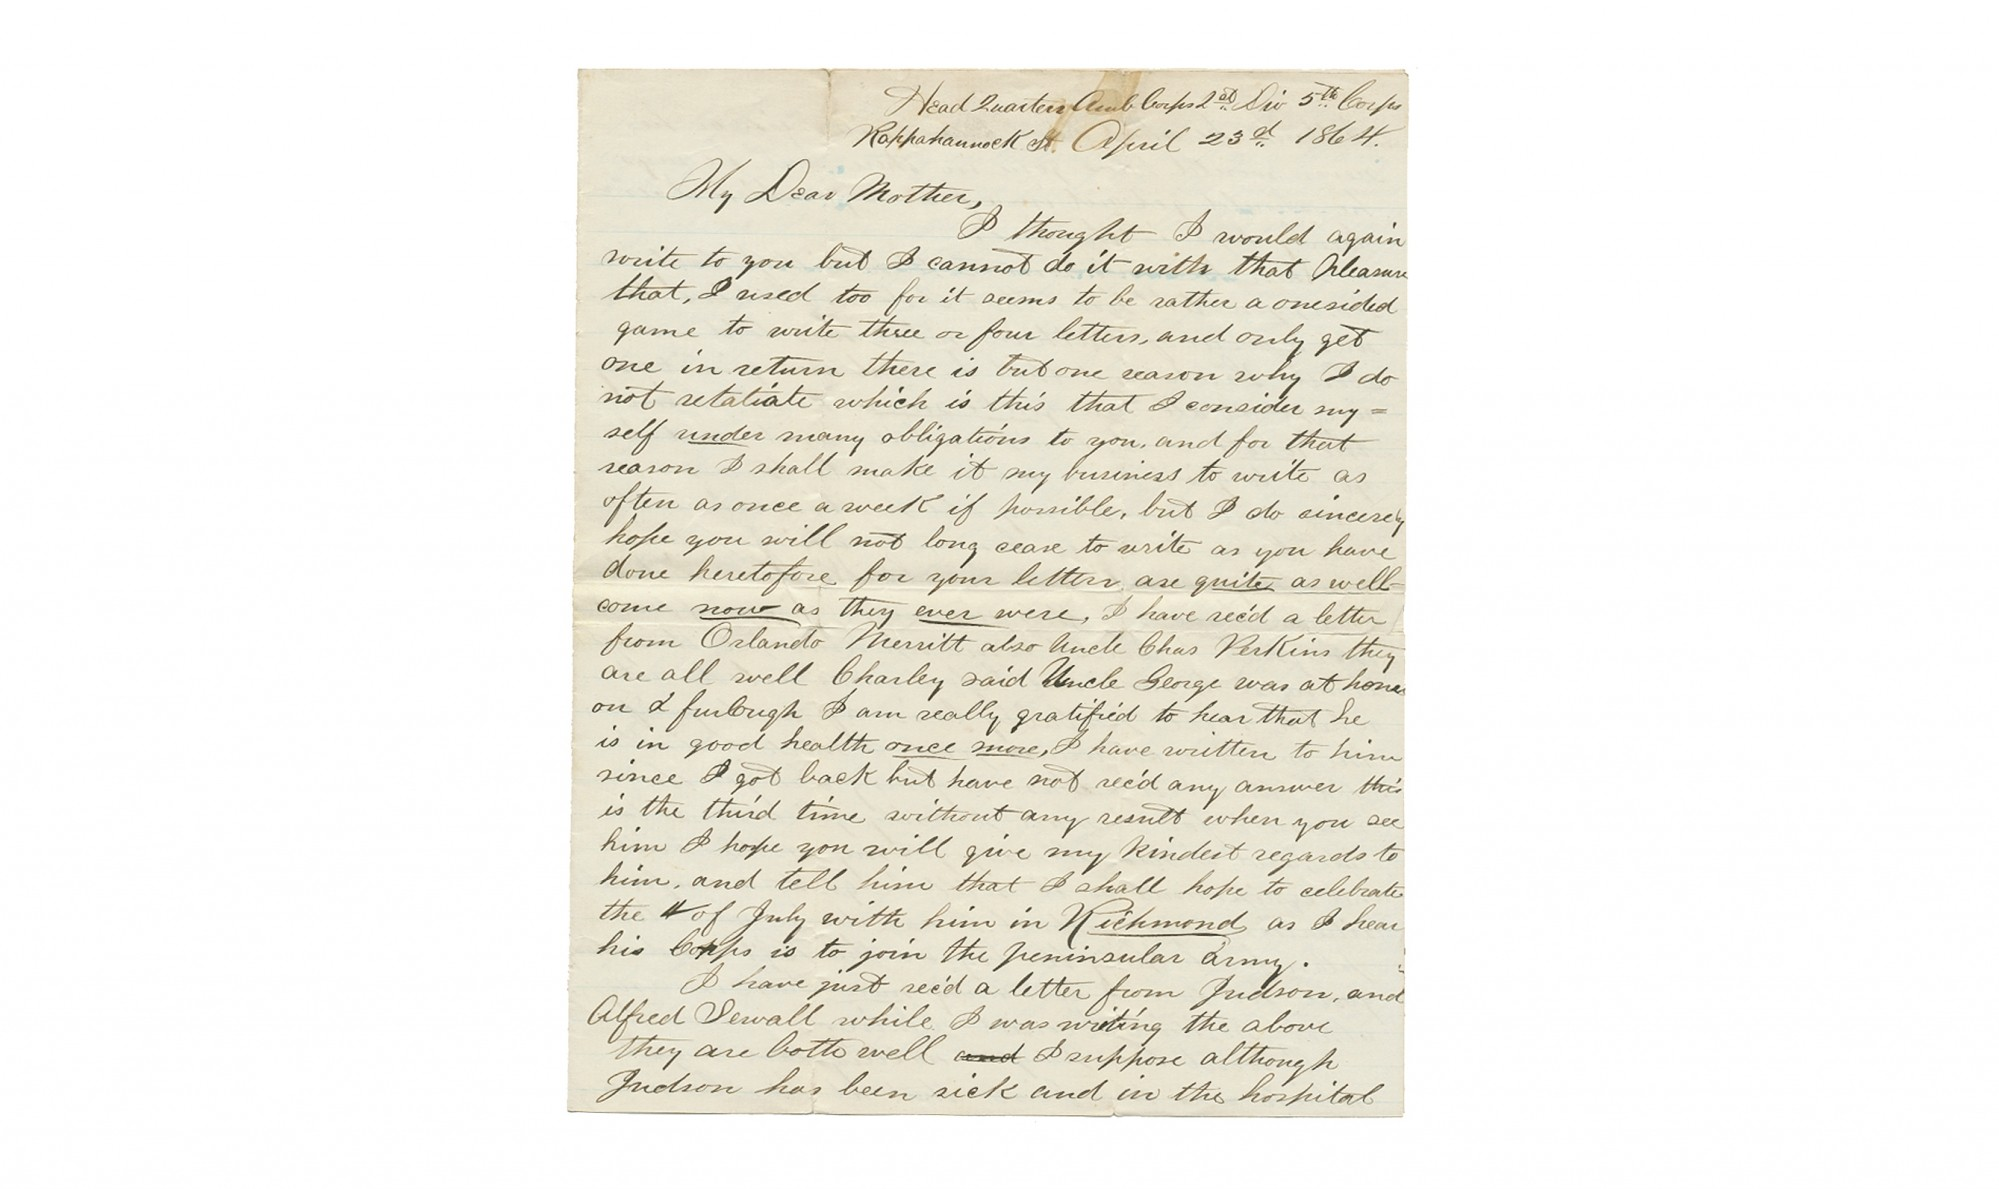 PAIR OF SOLDIER'S LETTERS - CORPORAL GEORGE P. RAMSDELL, 32ND MASSACHUSETTS INFANTRY